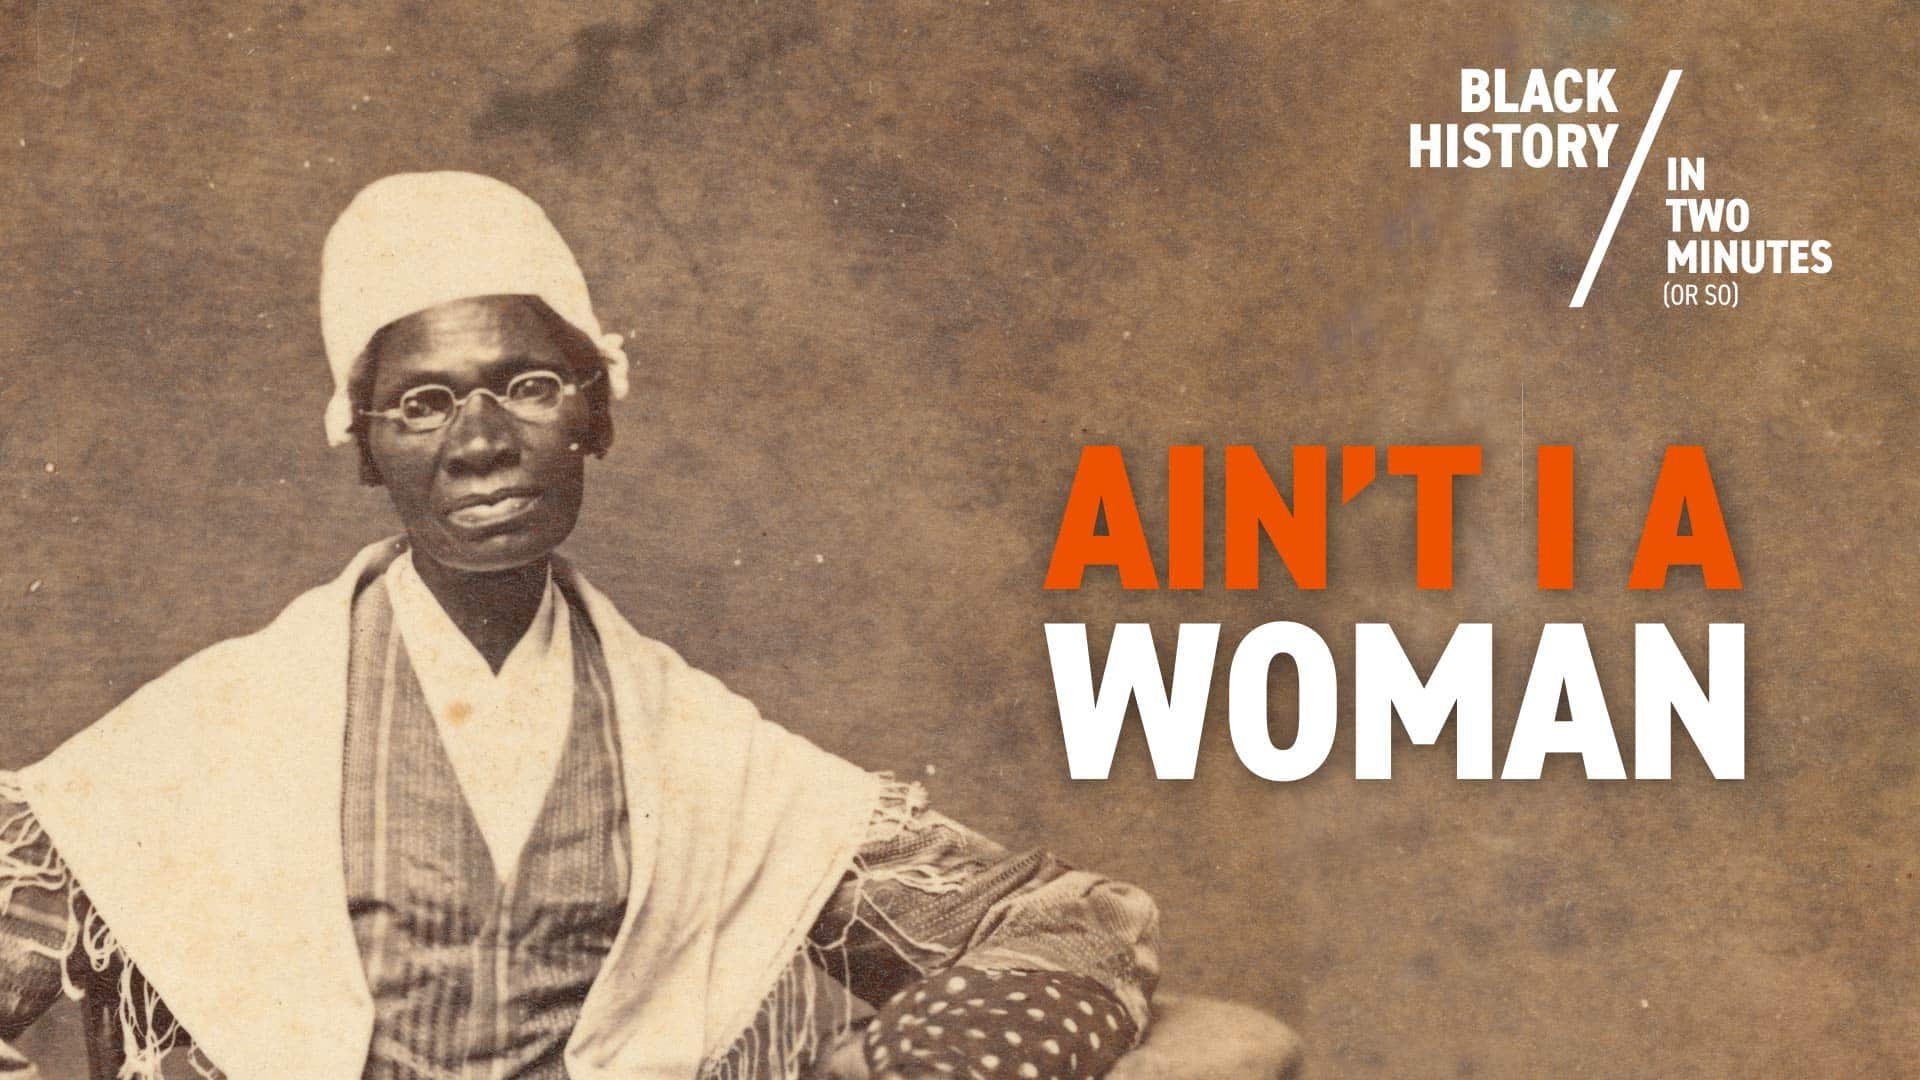 Sojourner Truth | Black History in Two Minutes